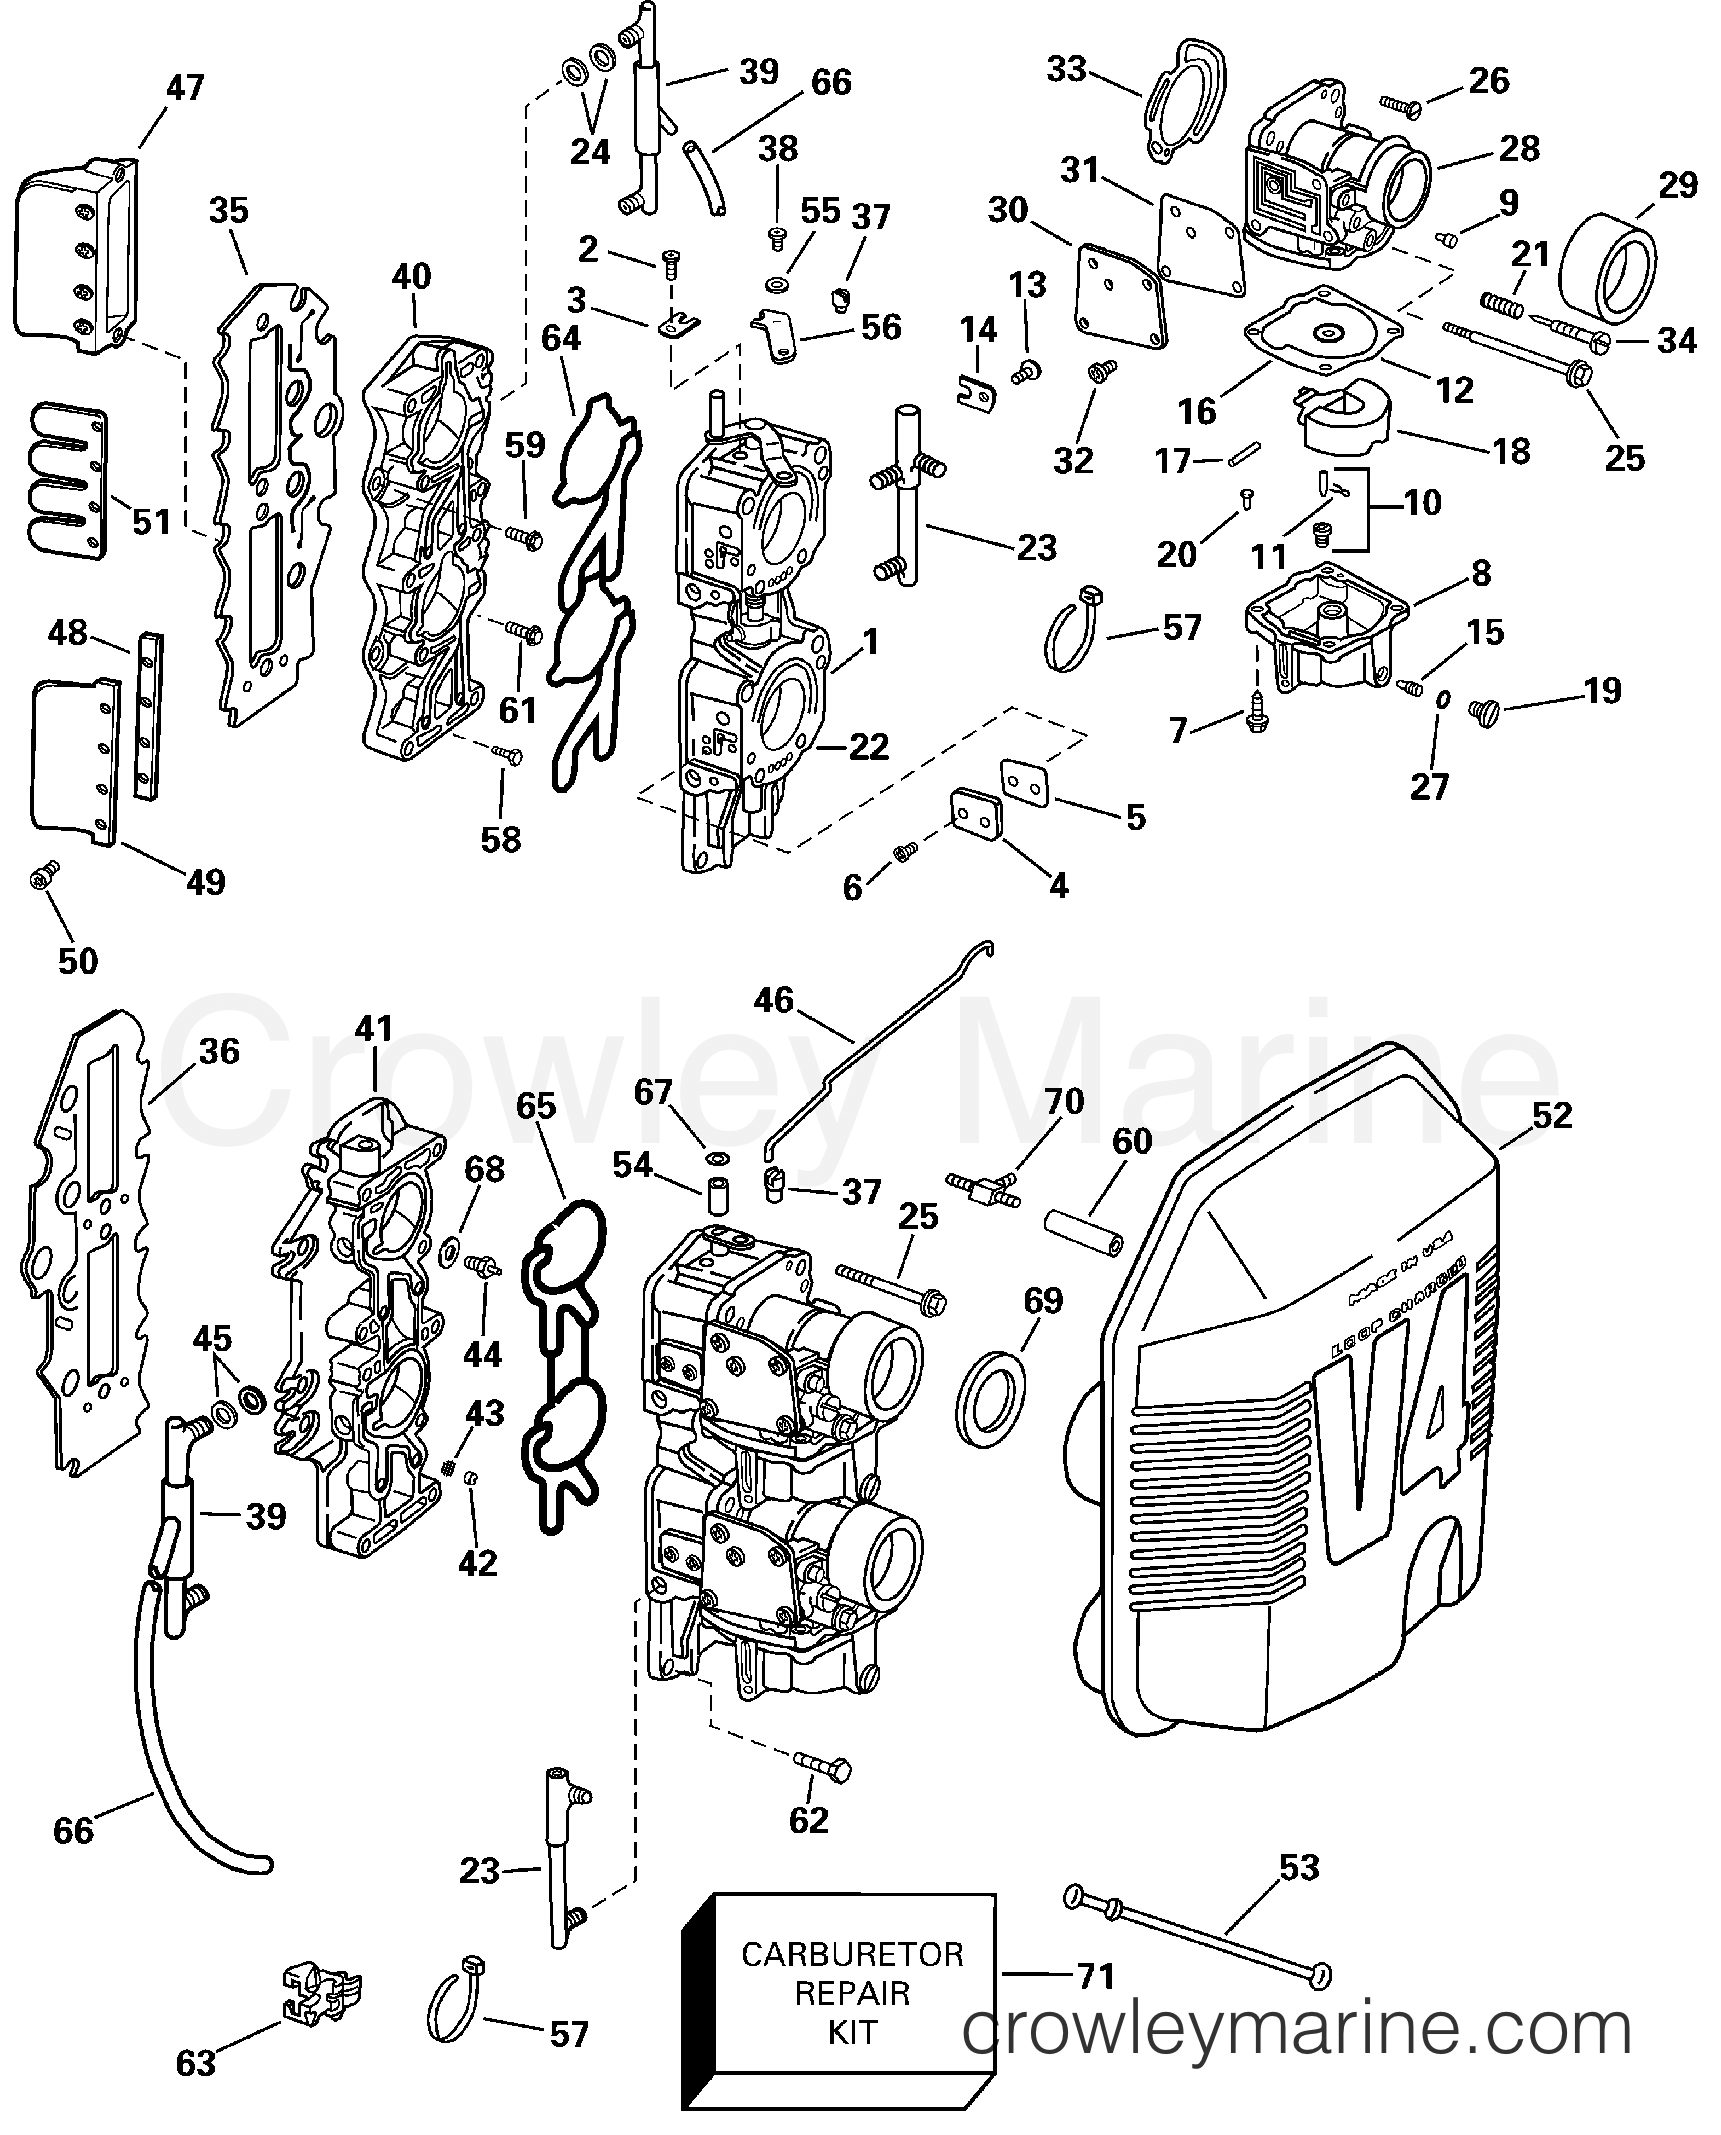 Rotax 380 Engine Diagram Bgmt Data Buell Carburetor Intake Manifold 2000 Evinrude Outboards 100 Aircraft Engines Sea Doo